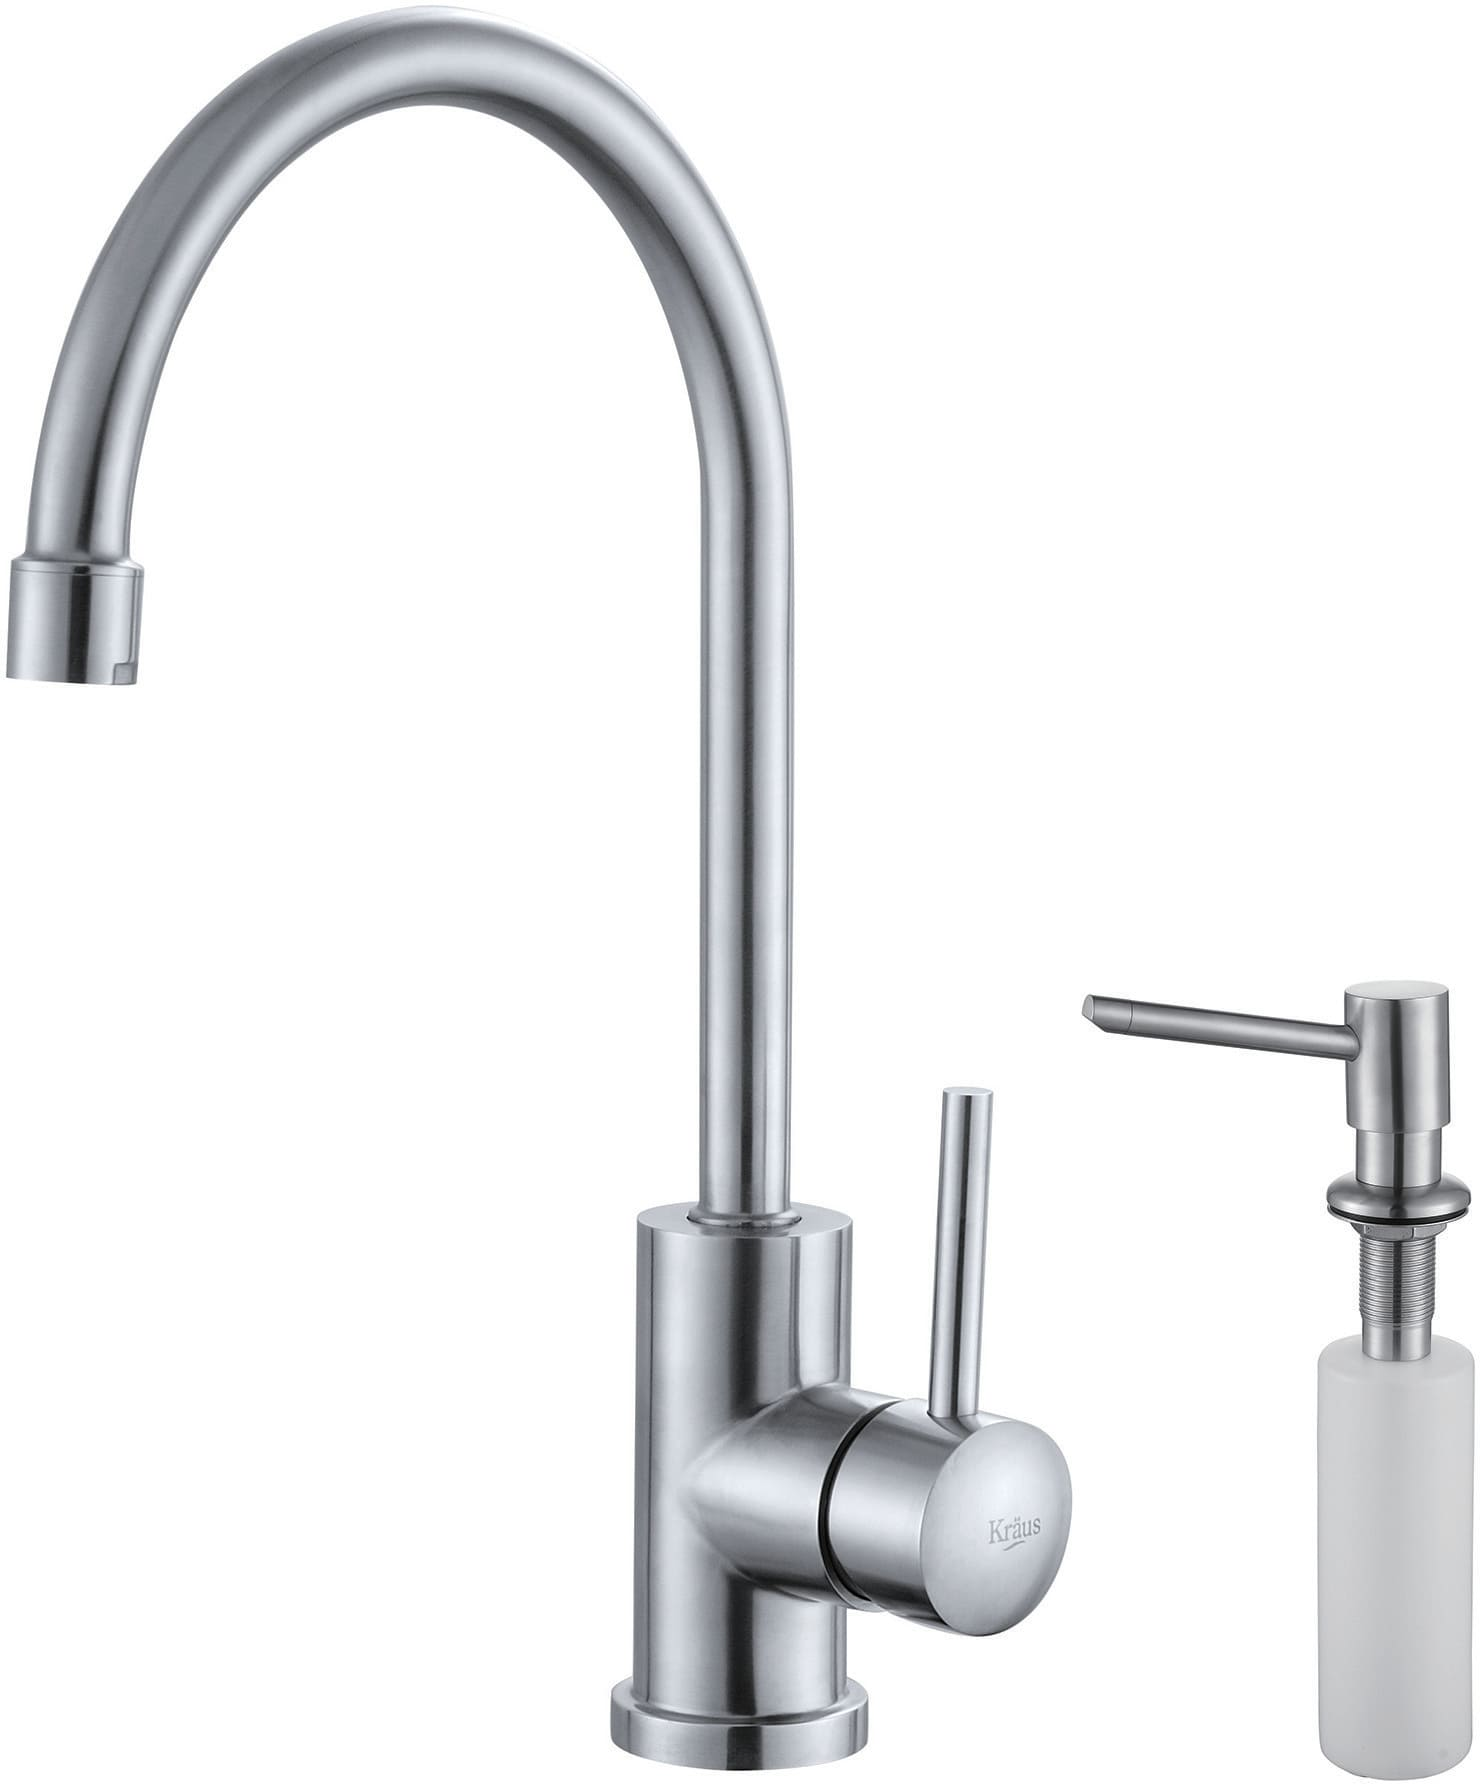 id brass kitchen faucet large steel faucets nwp product jacobean newport down pull stainless